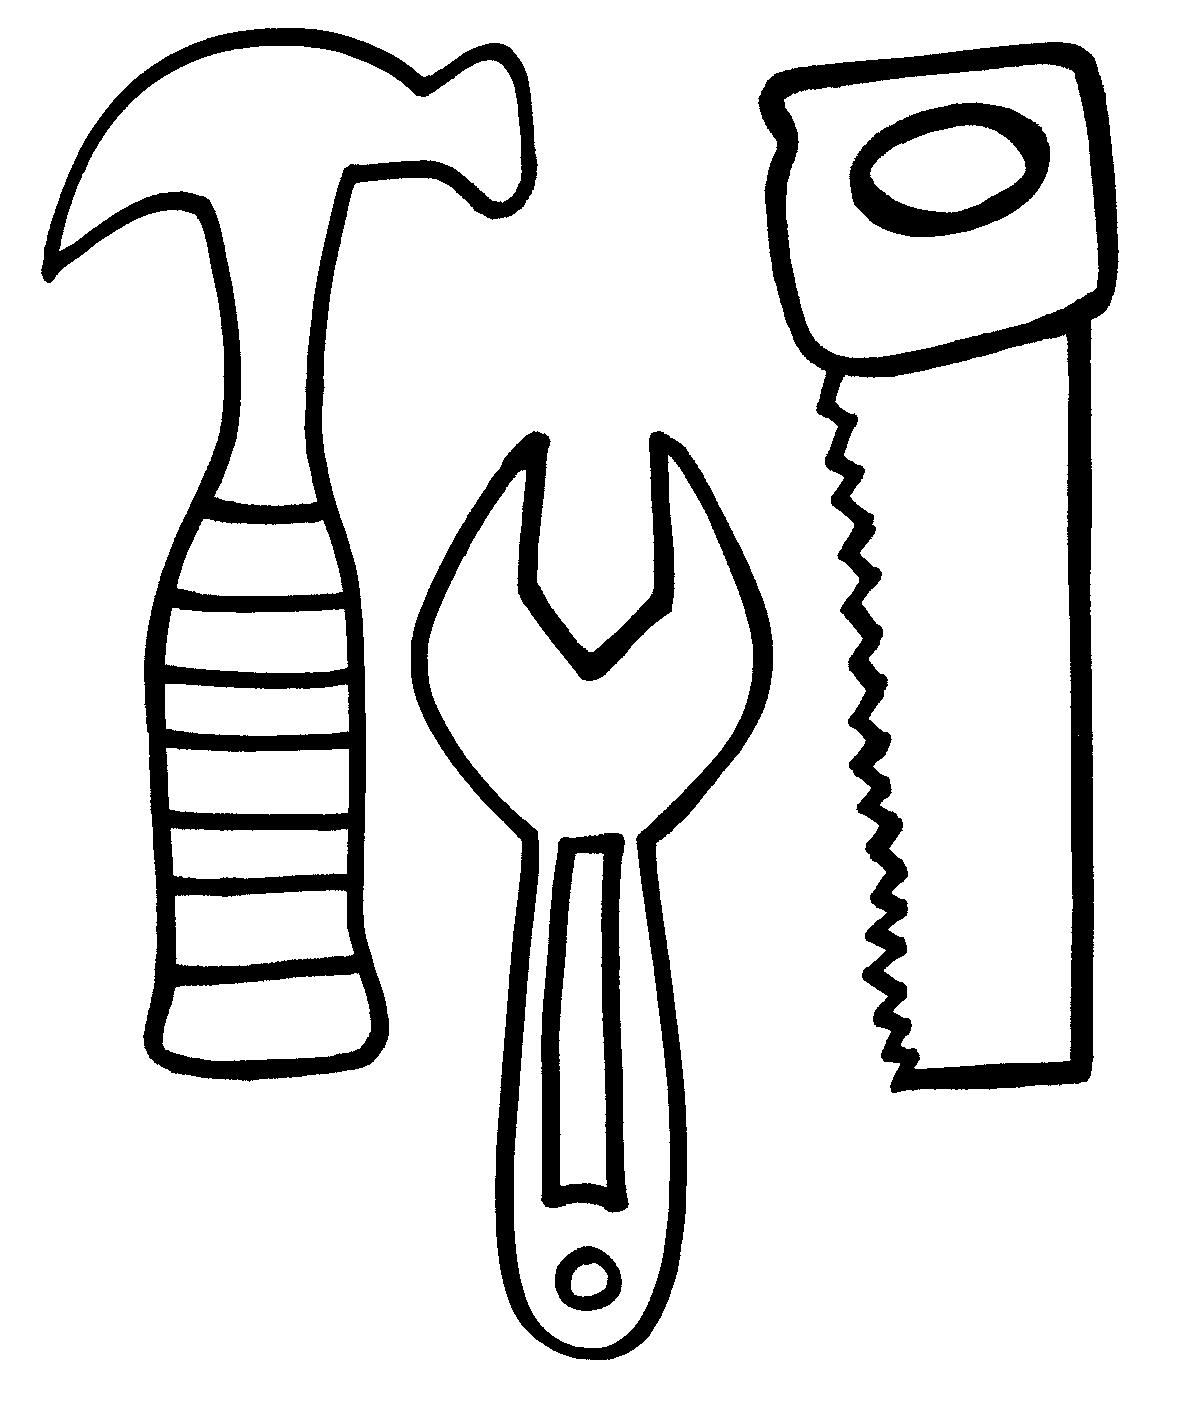 tools coloring pages - photo#1